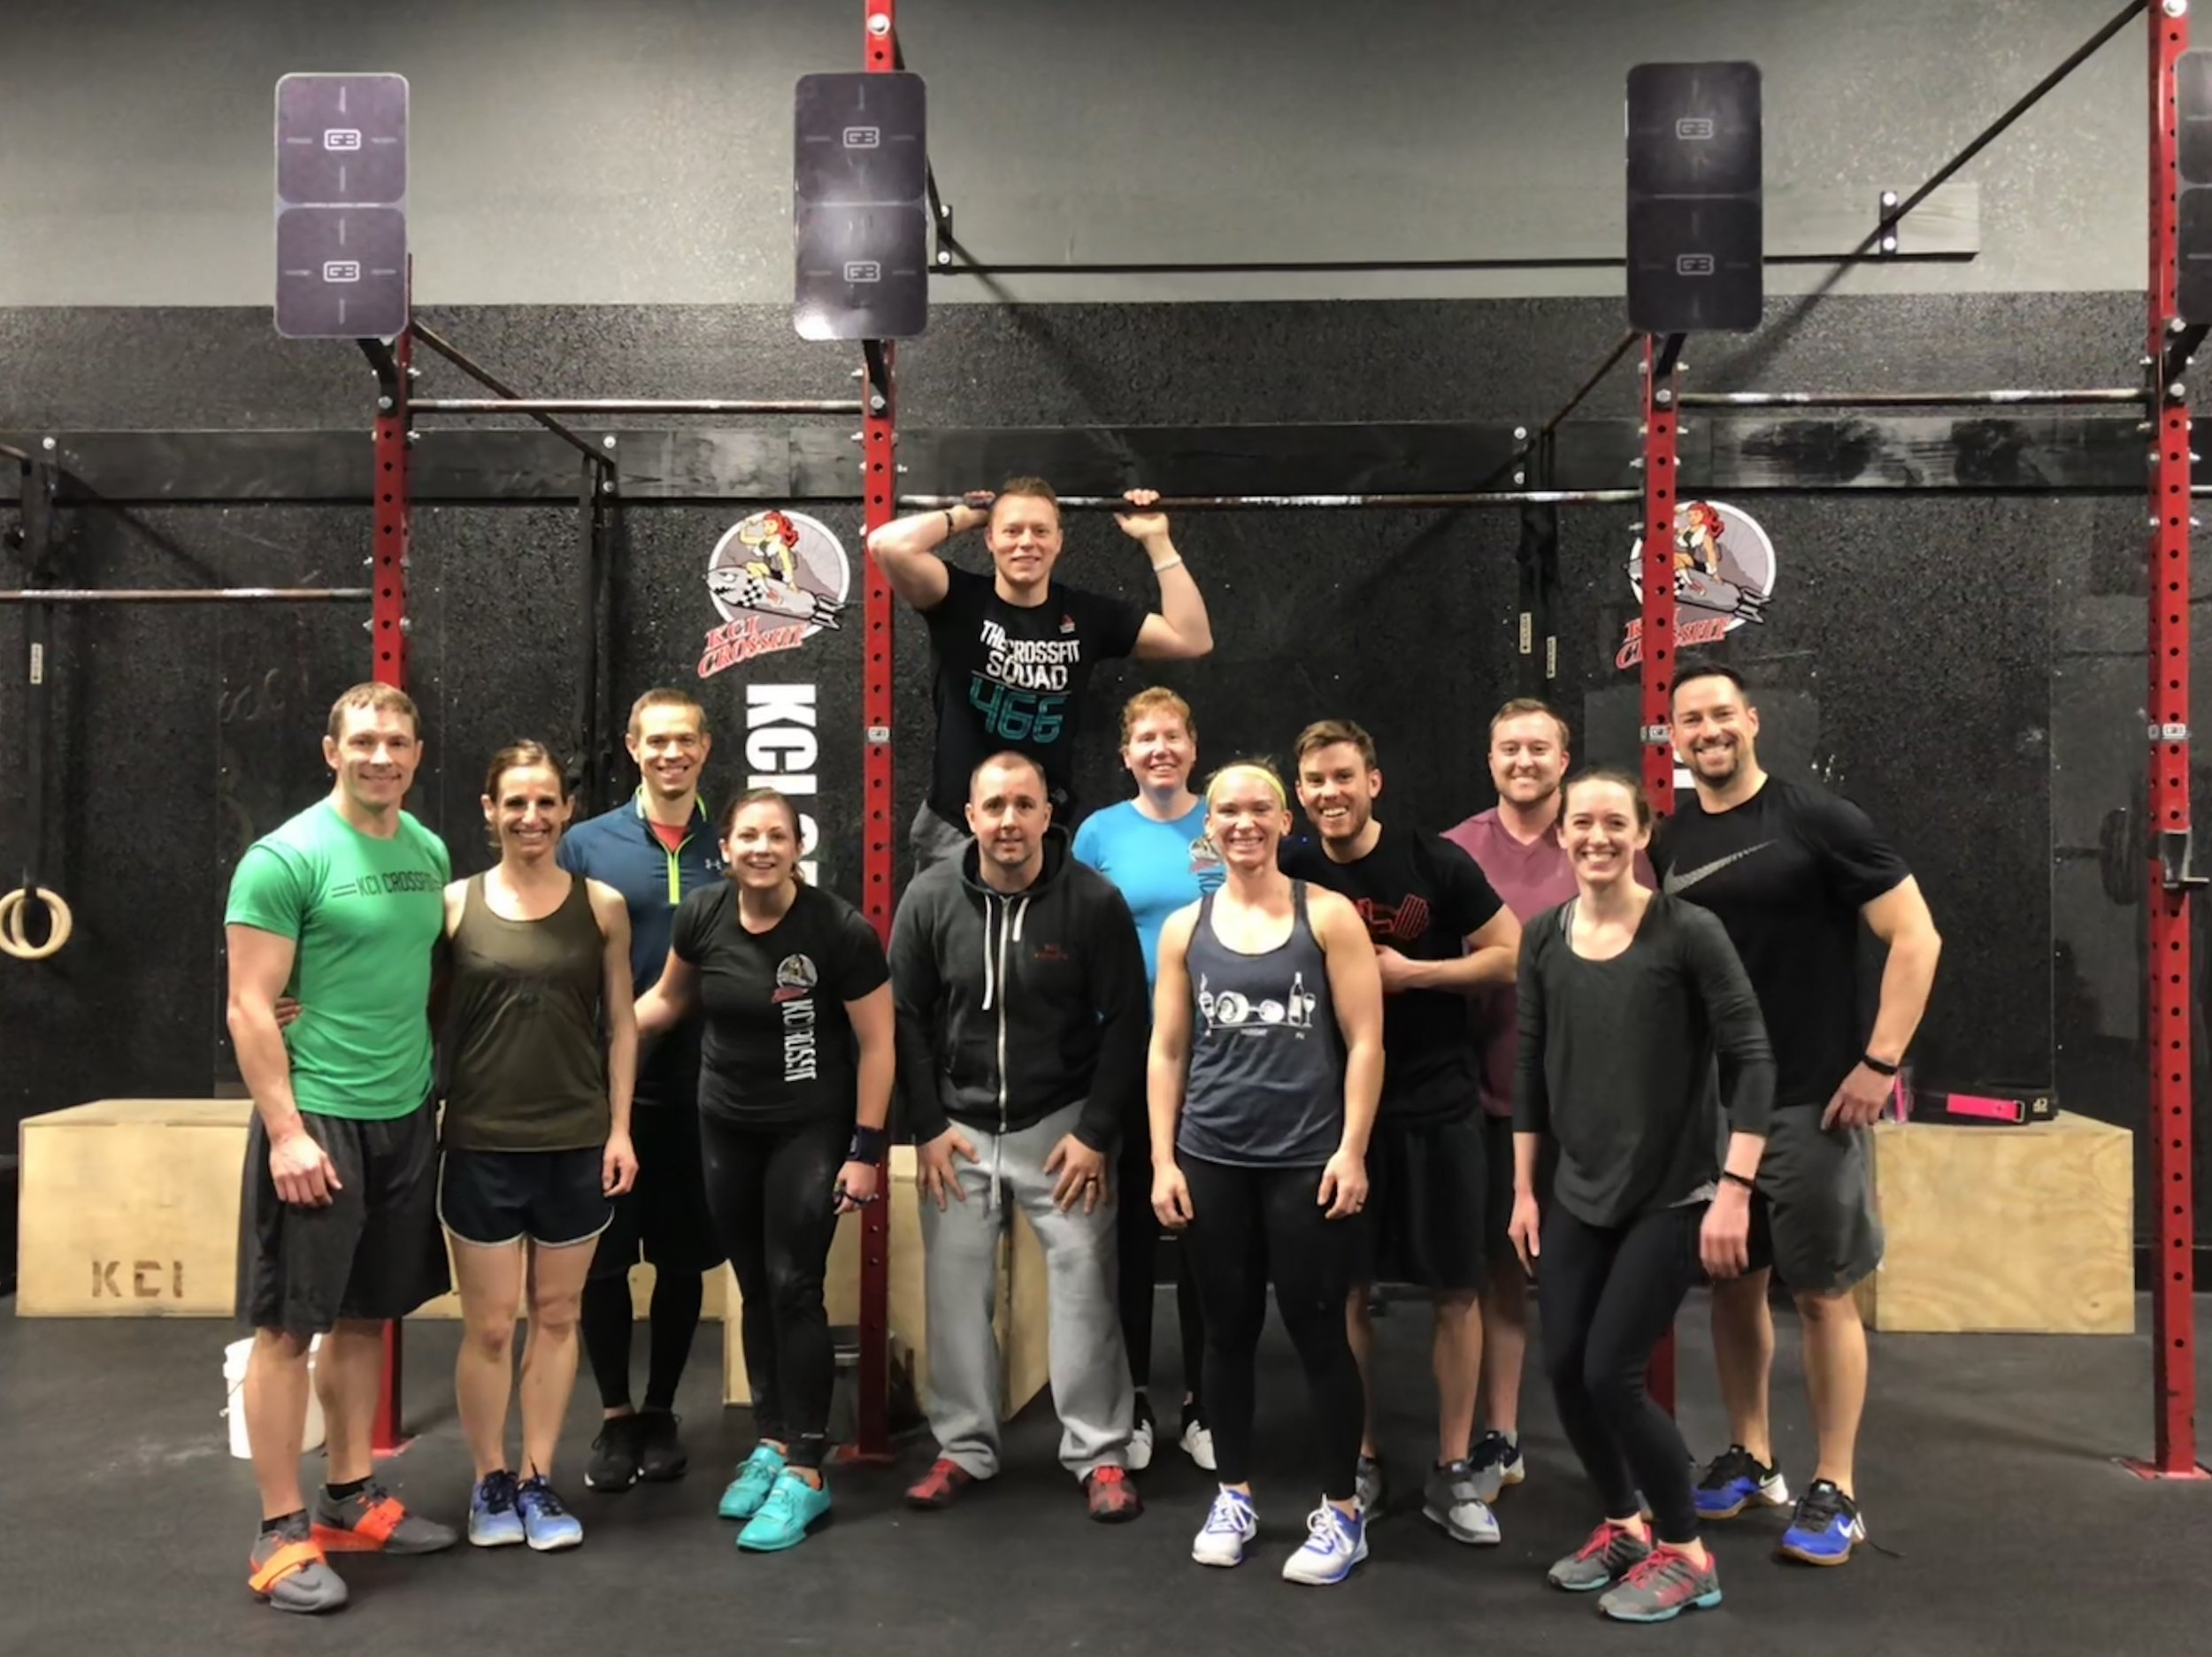 The Community at a CrossFit gym is a top benefit and reason so many people lose weight and get in shape with CrossFit